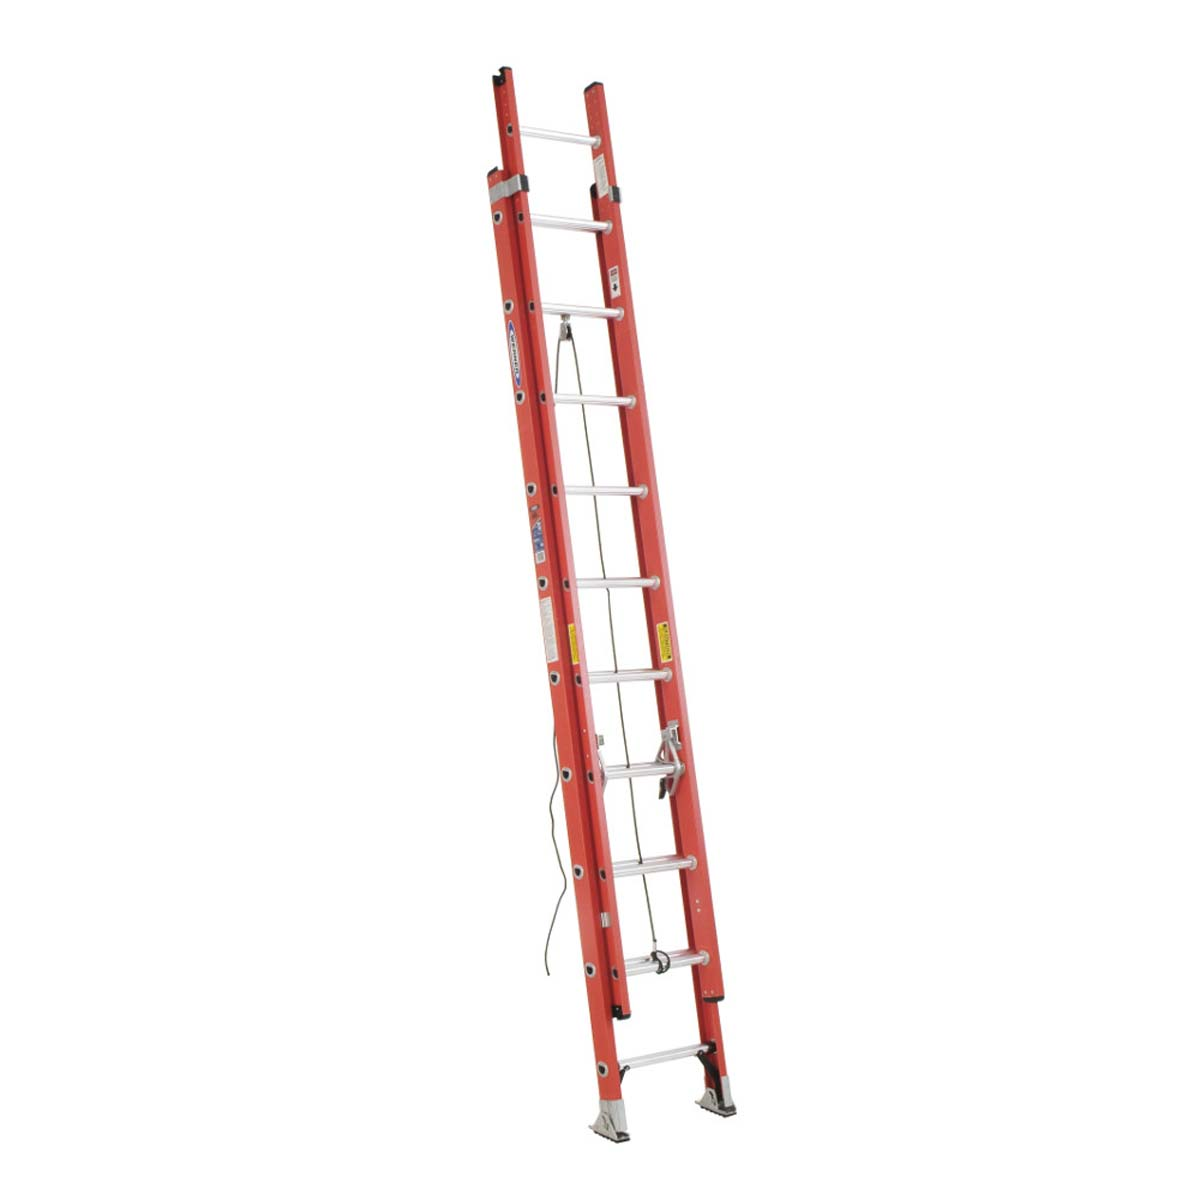 D6220-2 two section fiberglass extension ladder - 20'